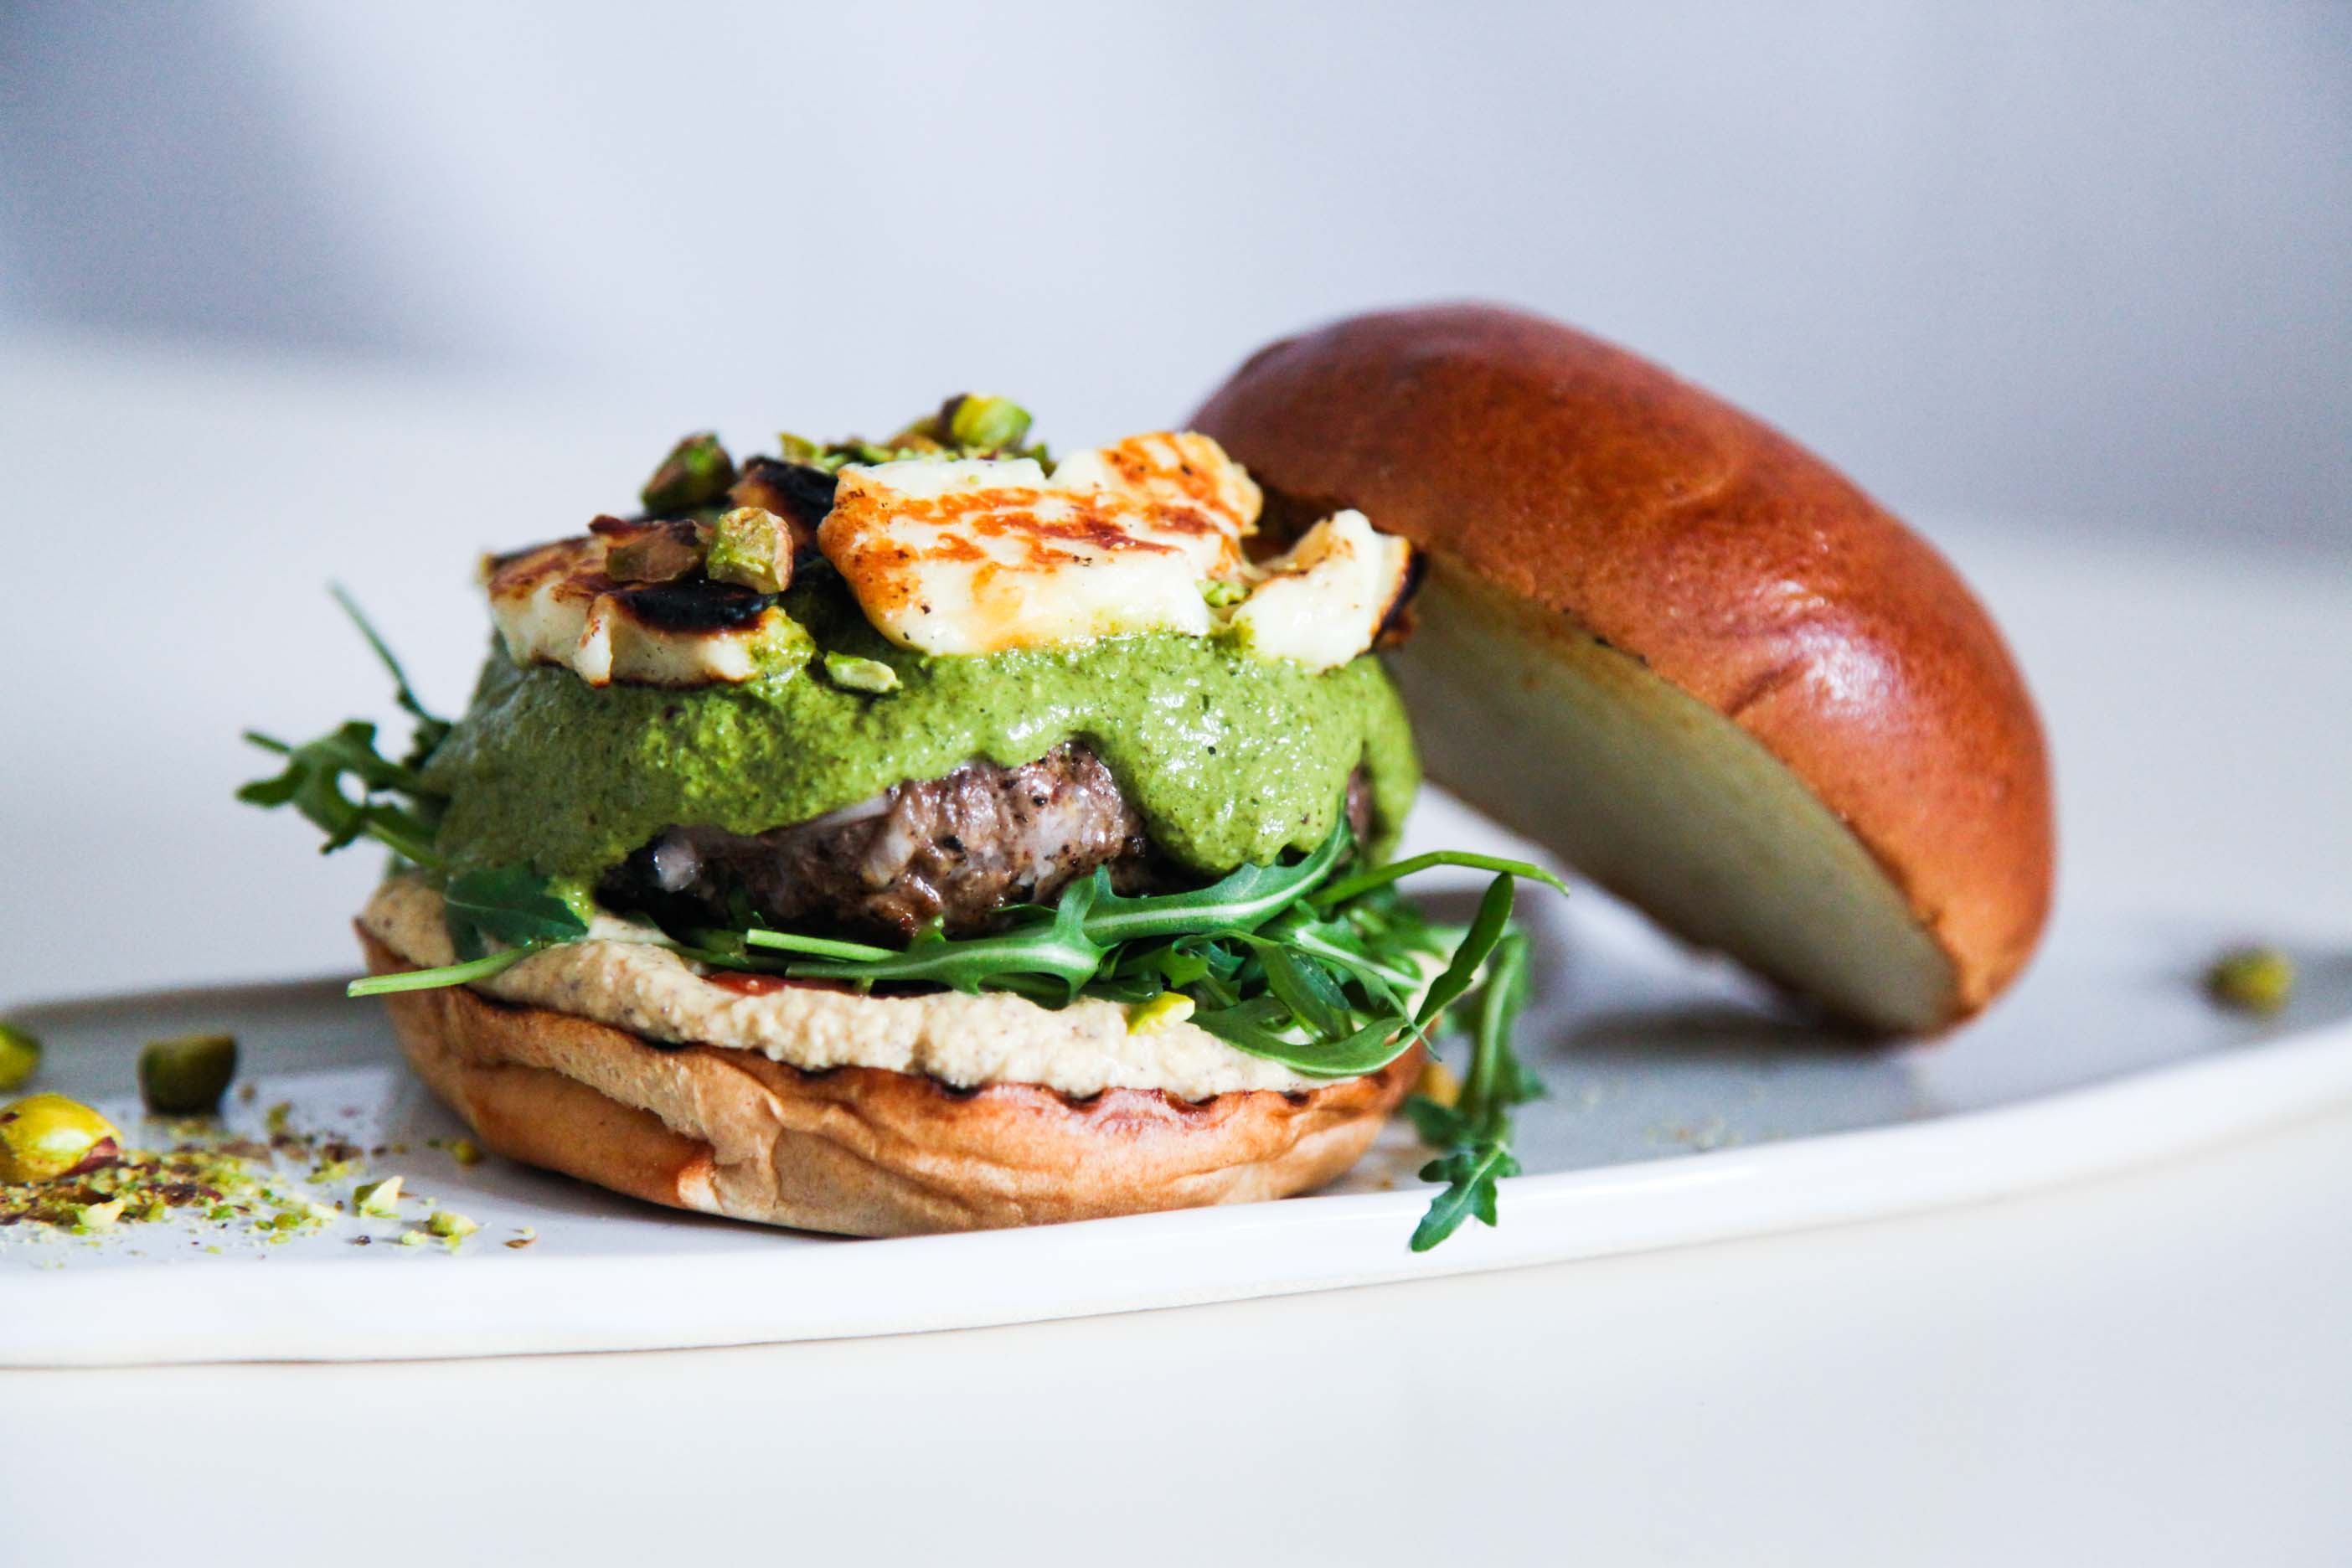 Super Tasty Lamb Burger With Halloumi And Green Herb Sauce Berries And Spice